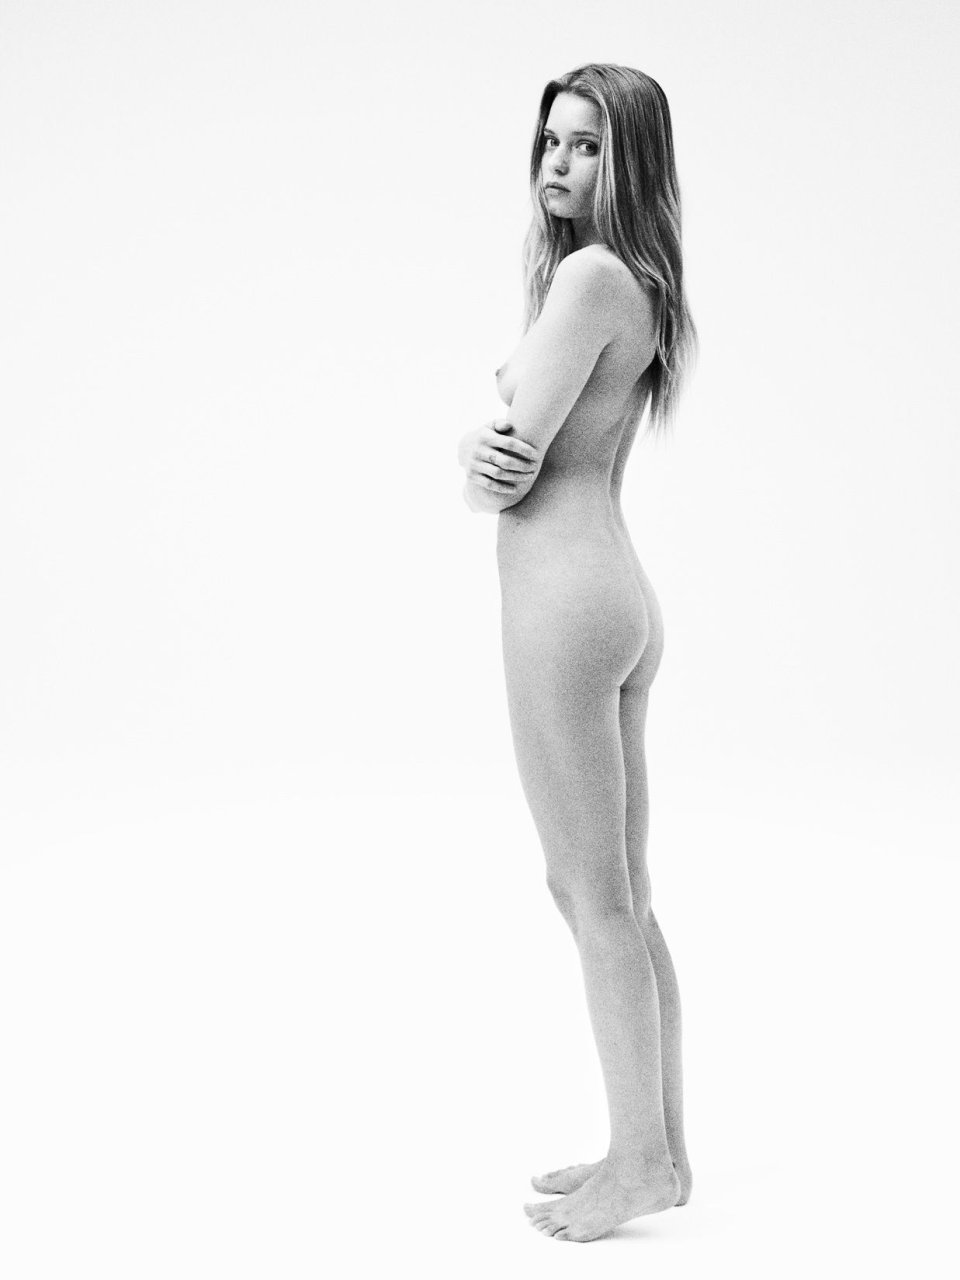 Abbey lee kershaw nude